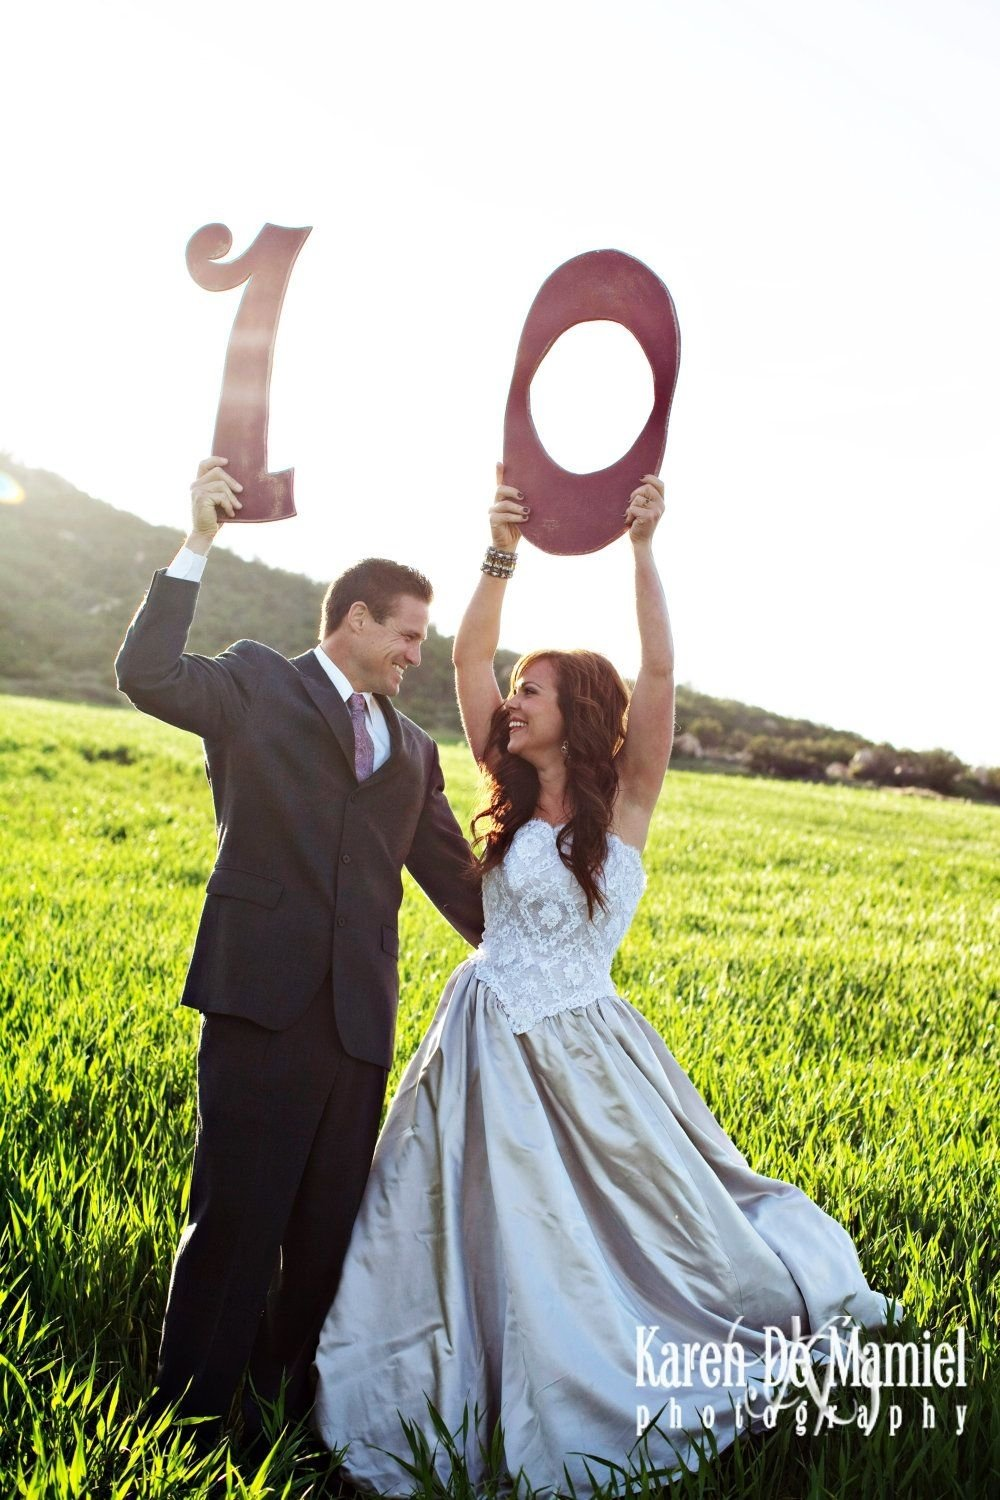 10 Most Popular 10 Year Vow Renewal Ideas love this idea i want us to put our wedding garb on again for our 2020